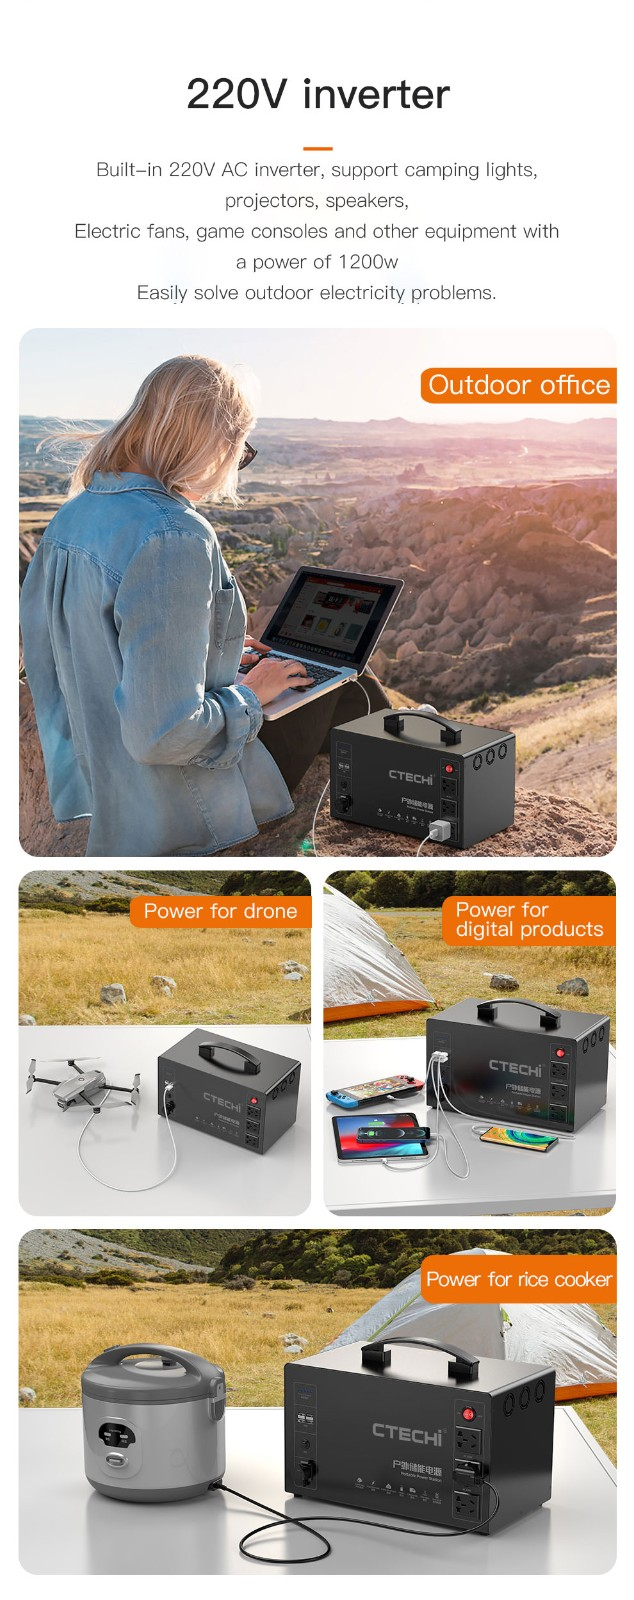 CTECHi professional portable solar power station personalized for outdoor-11